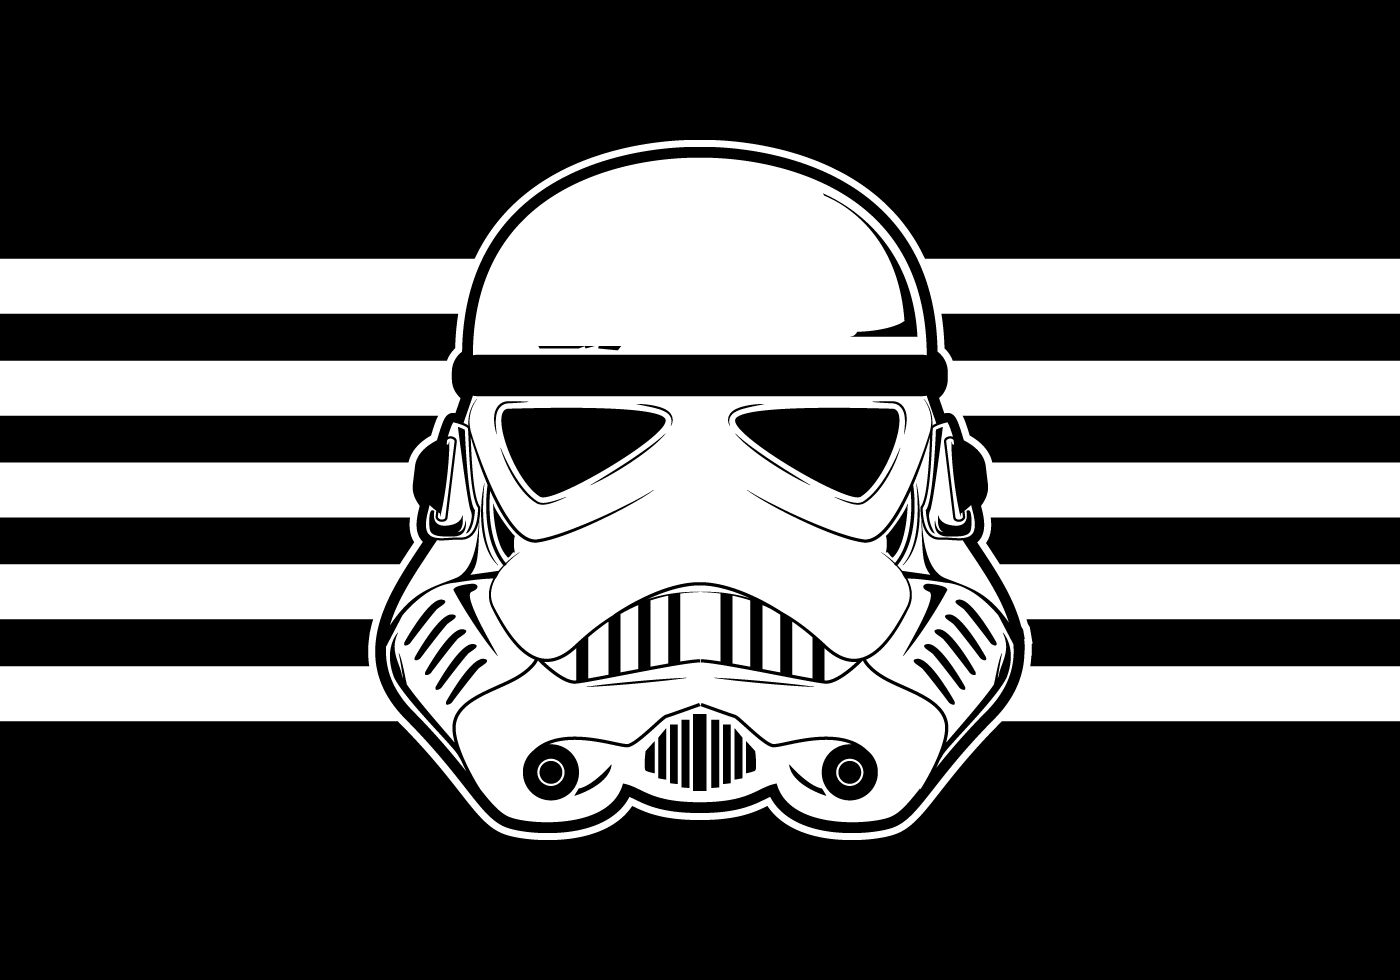 Star Wars Trooper Helmet Vector - Download Free Vector Art, Stock ...